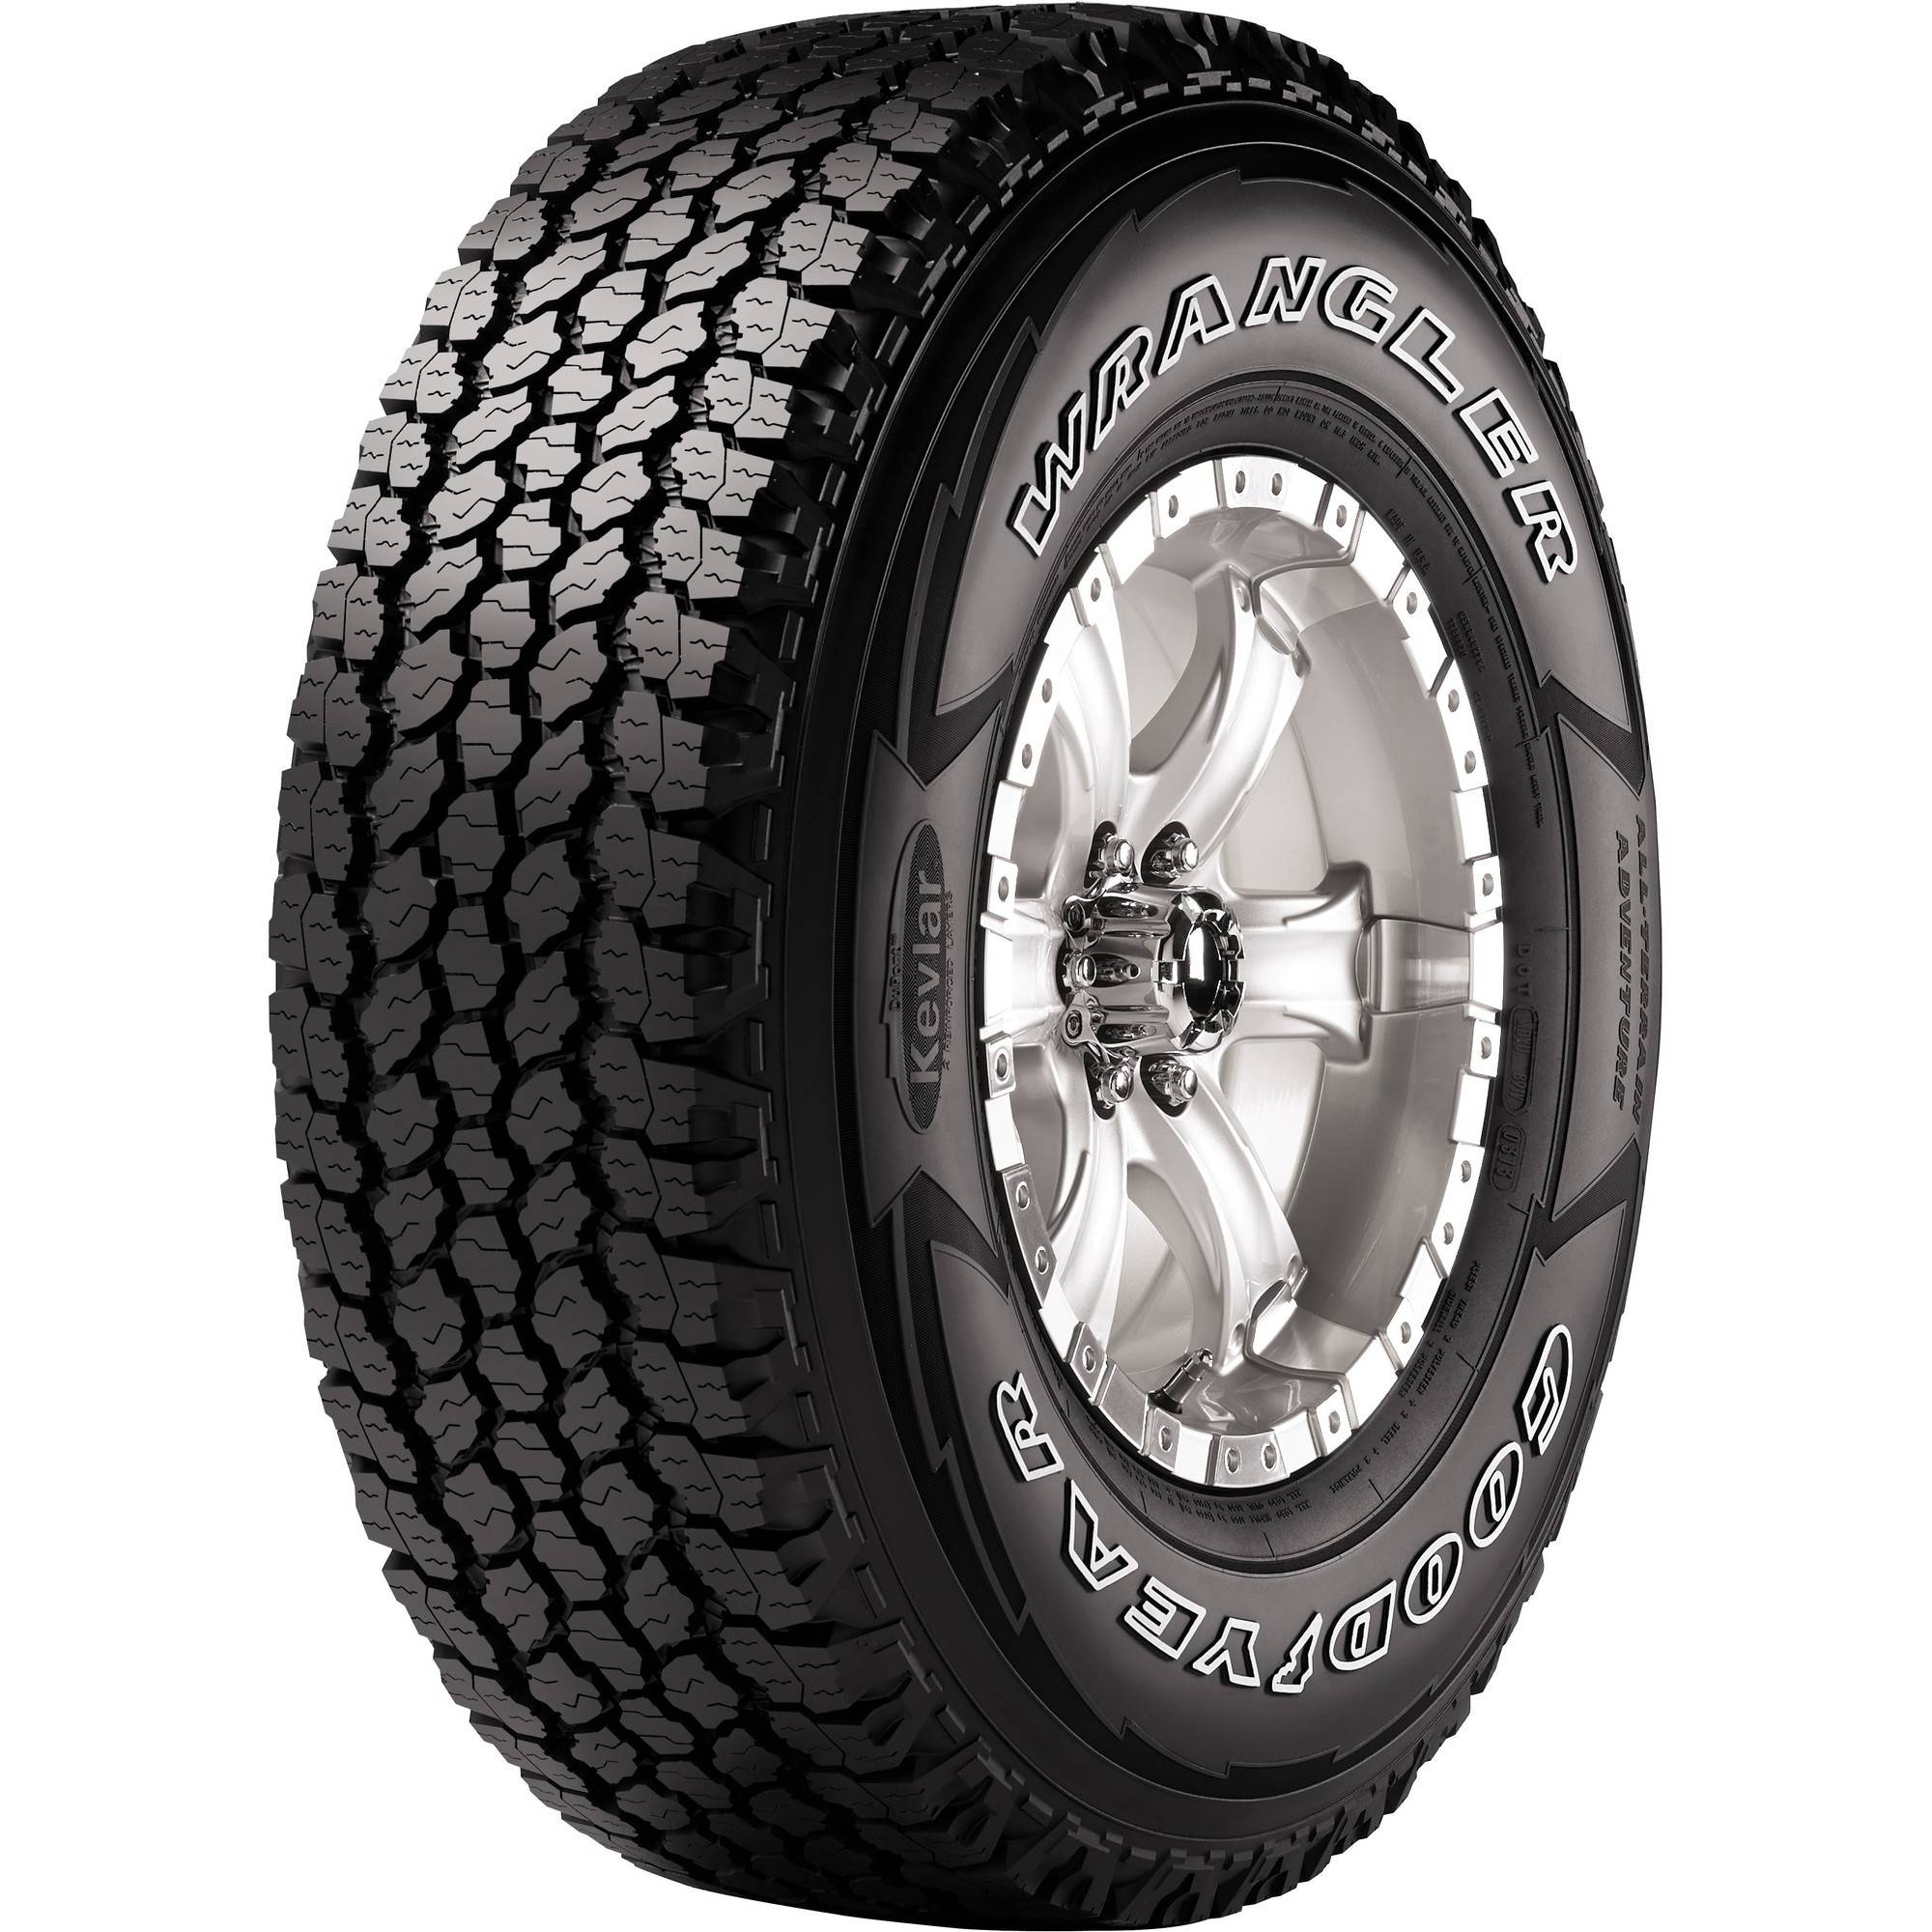 Goodyear Wrangler All-Terrain Adventure LT275/70R18/10 Tire 125S